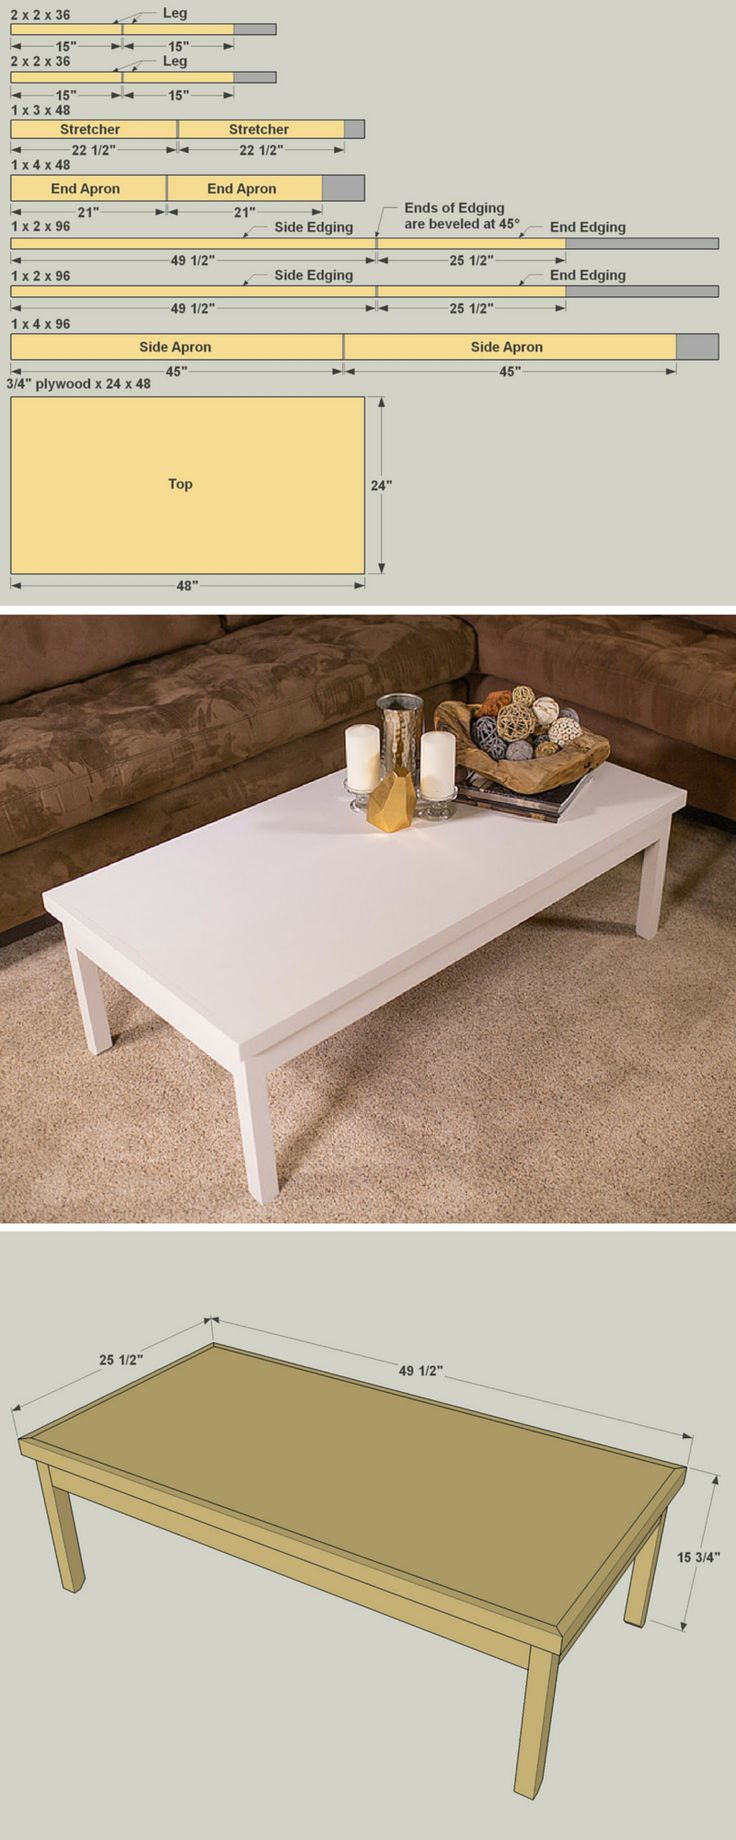 How to make a sofa table from 1 x 6 lumber - Even If You Ve Never Built Furniture Before You Can Create This Super